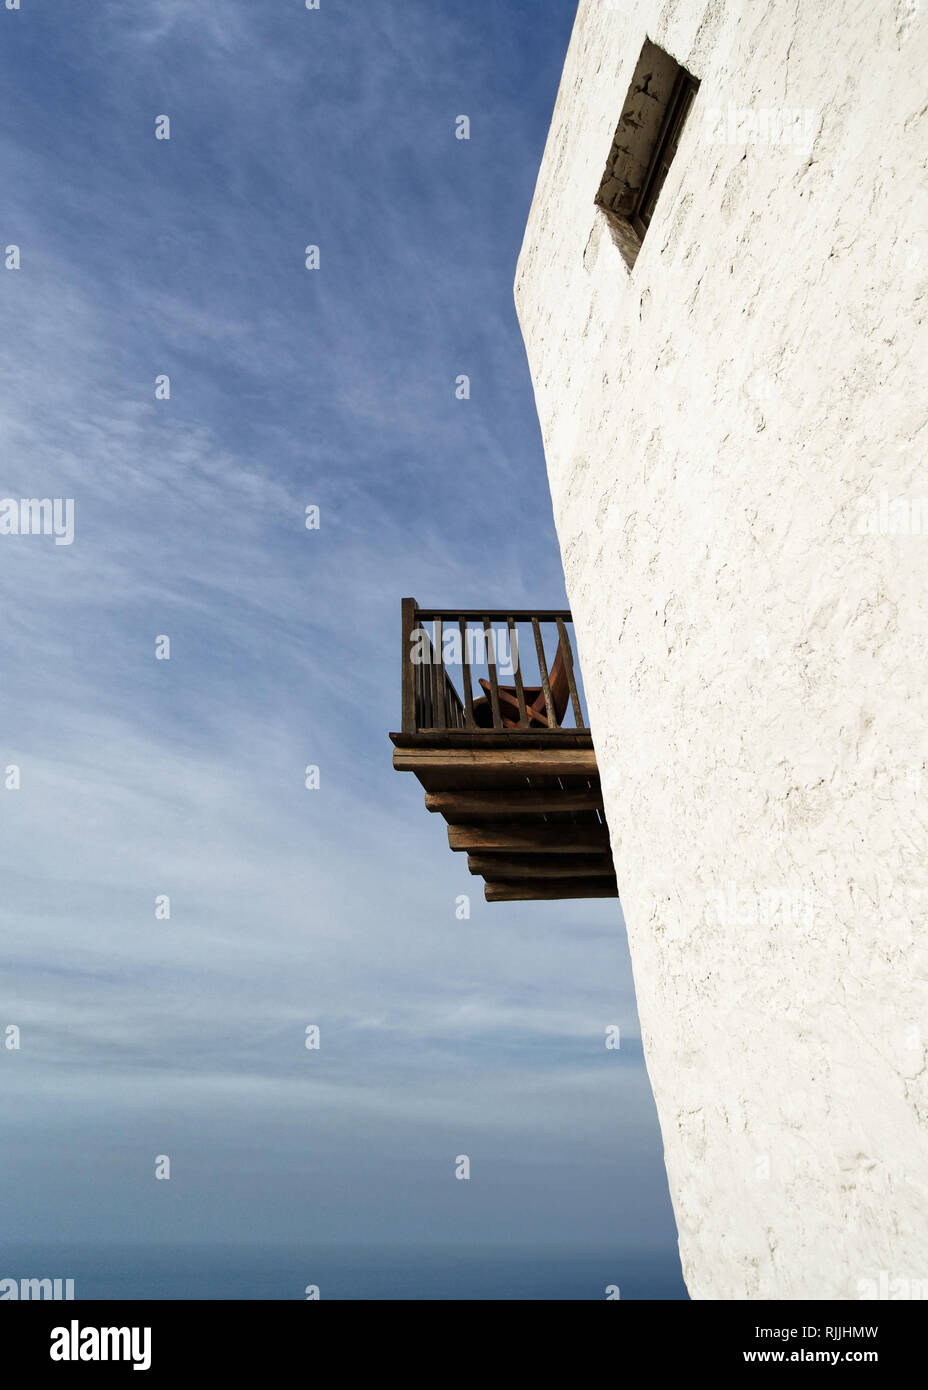 Perspective view from below of an older white typical building with a wooden balcony and a window, in the background the ocean and blue sky - Location - Stock Image